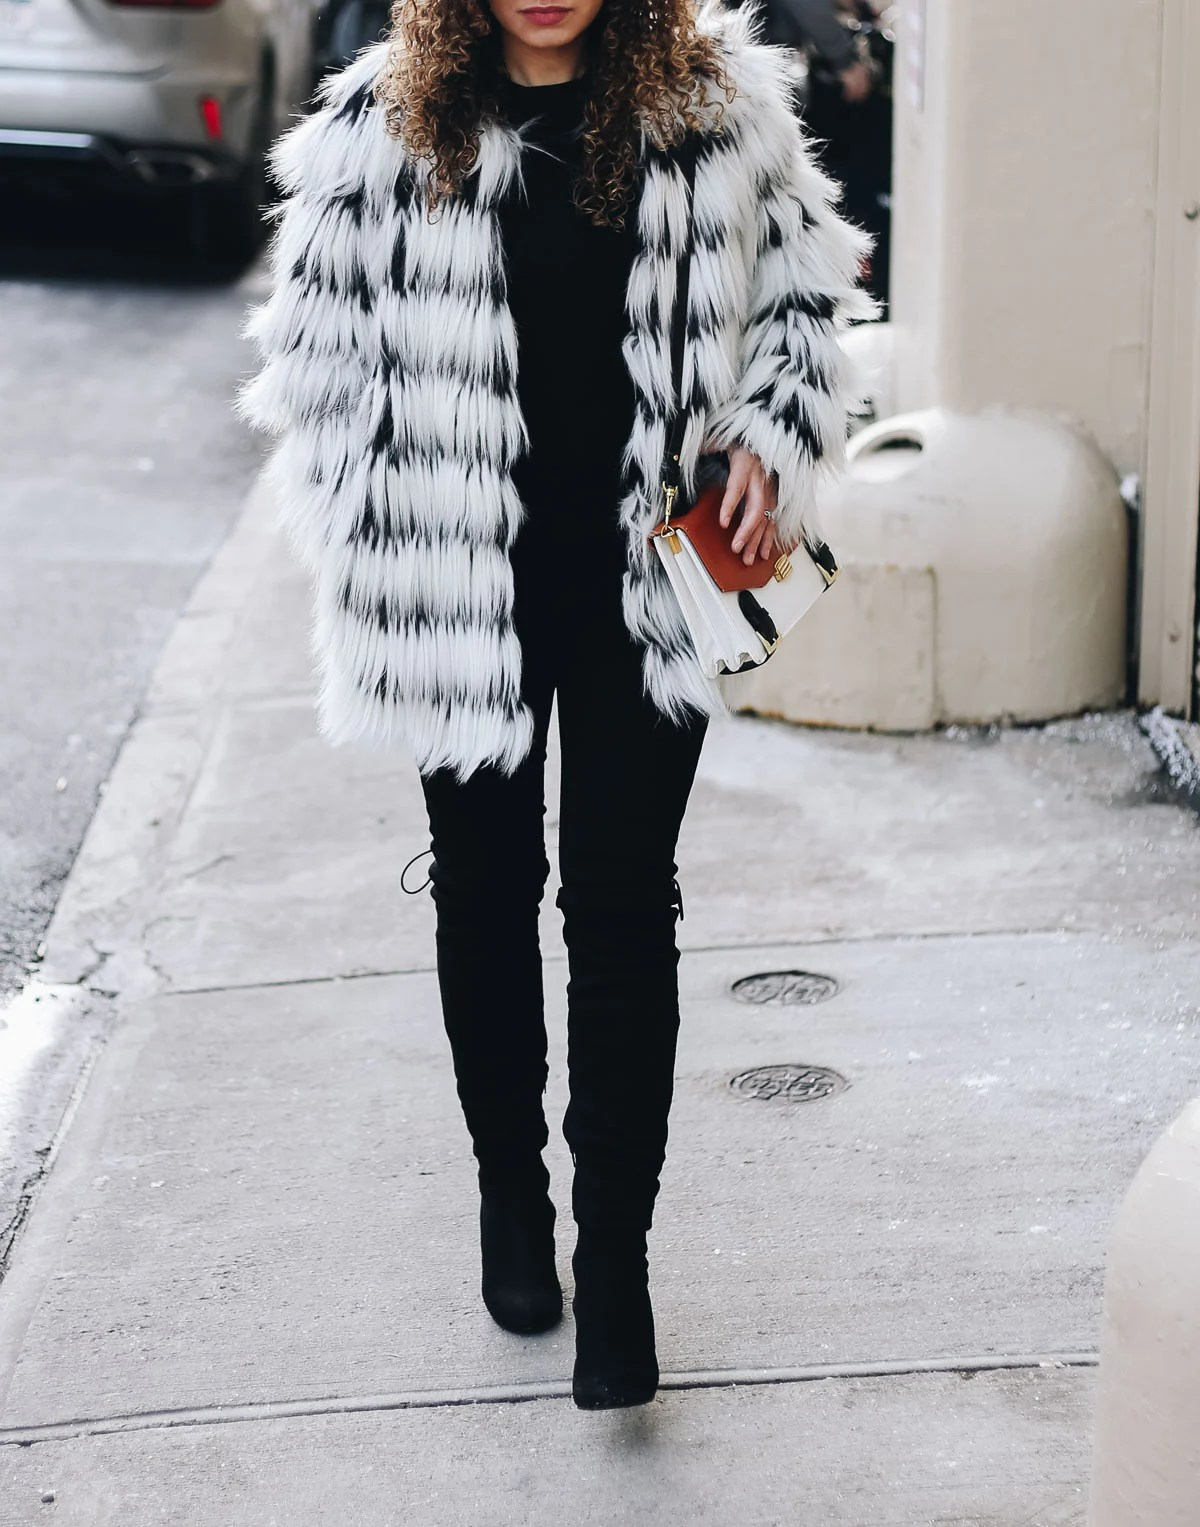 Faux fur statement coat to complete your winter travel outfit!